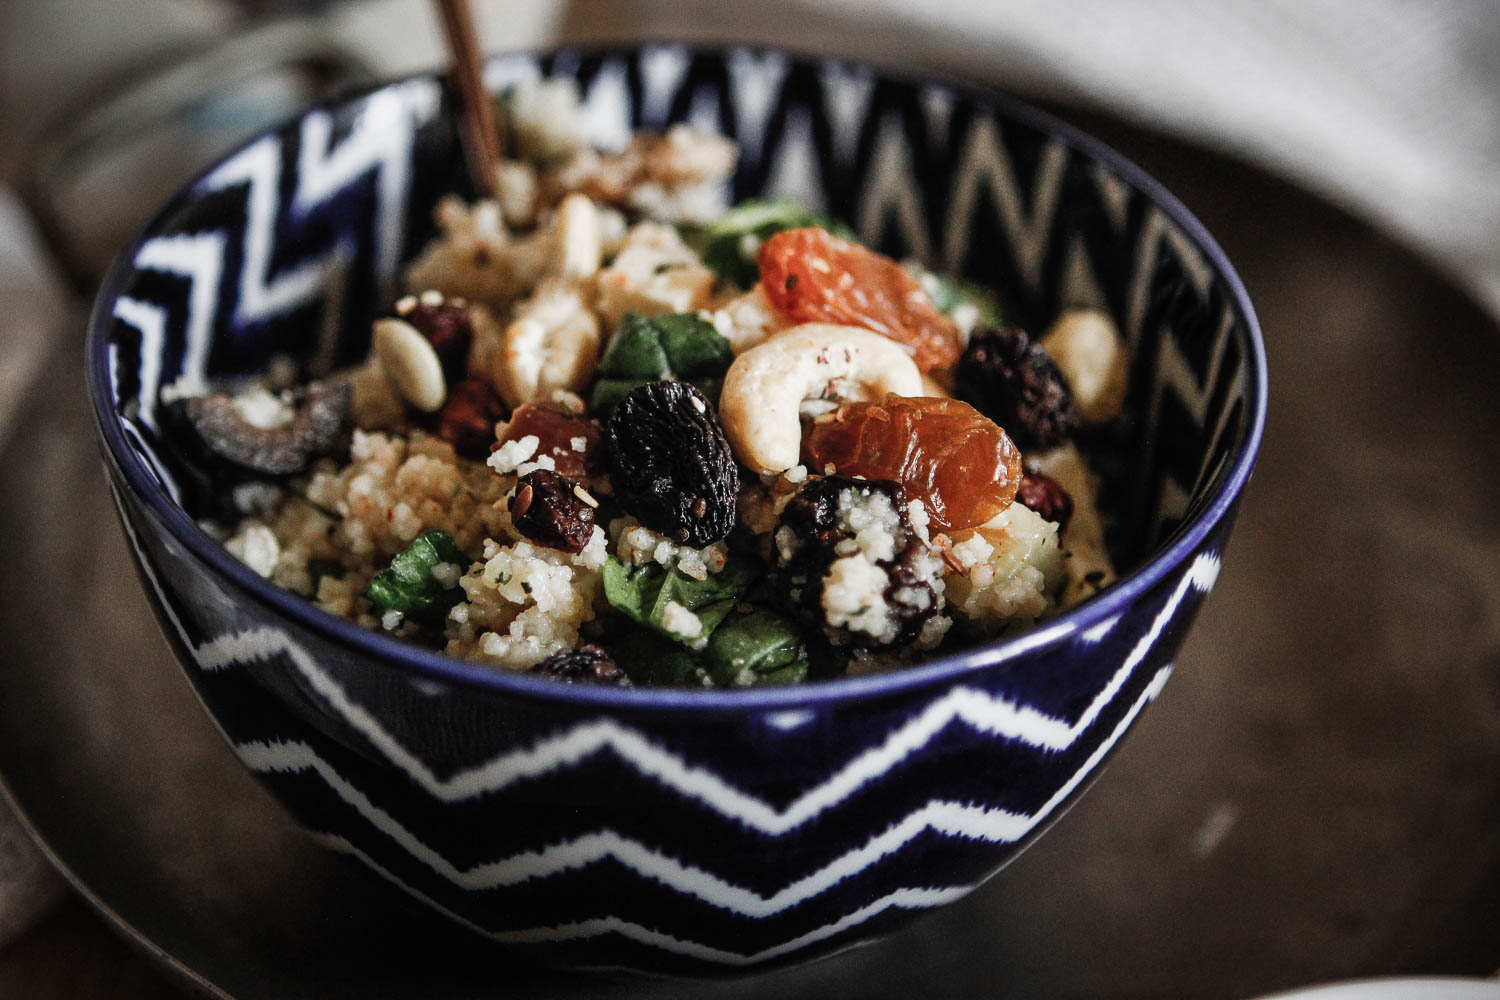 lauralamode-food-rezept-recipe-health-fitfood-fitness-oriental-orientalfood-couscous-couscous salad-fitnessfood-berlin-blogger-foodblogger-fitnessblogger